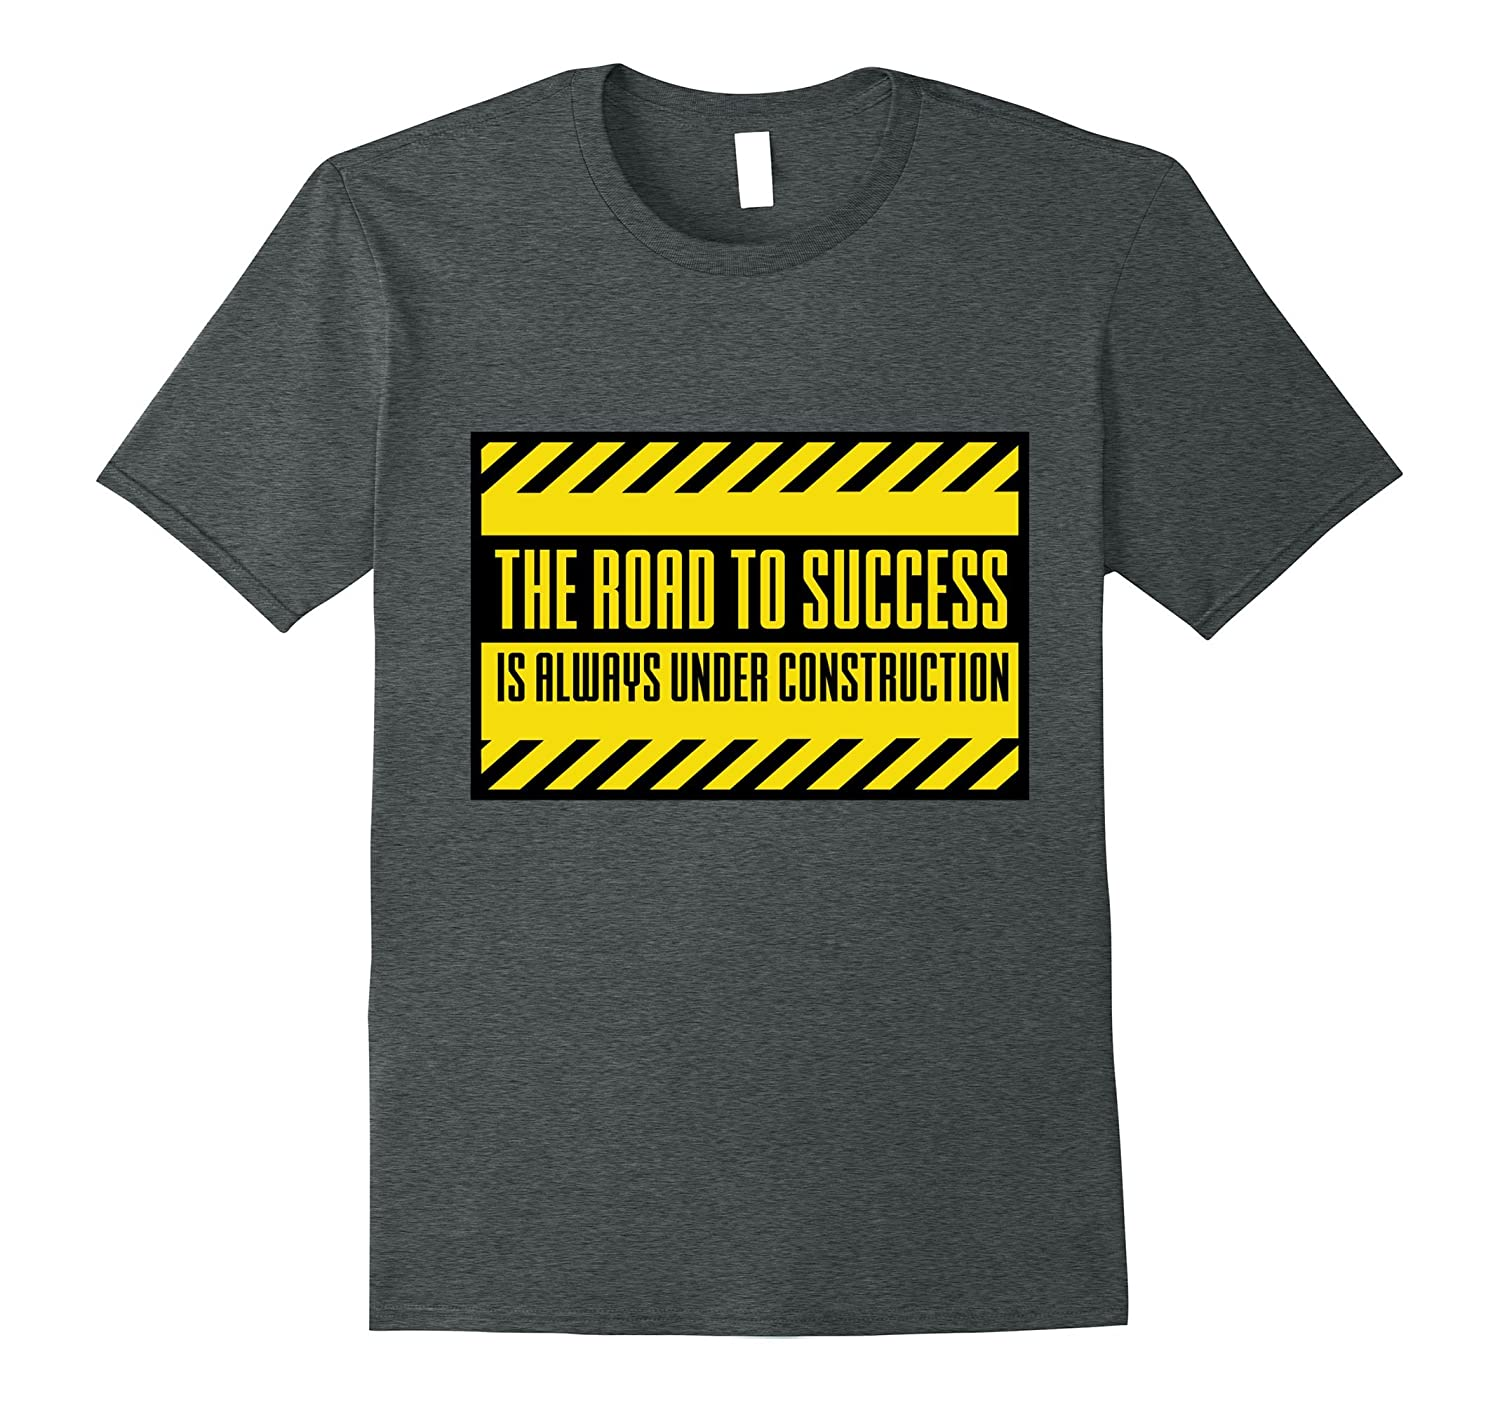 The Road To Success Is Always Under Construction Inspiring Girls T Shirt Tee